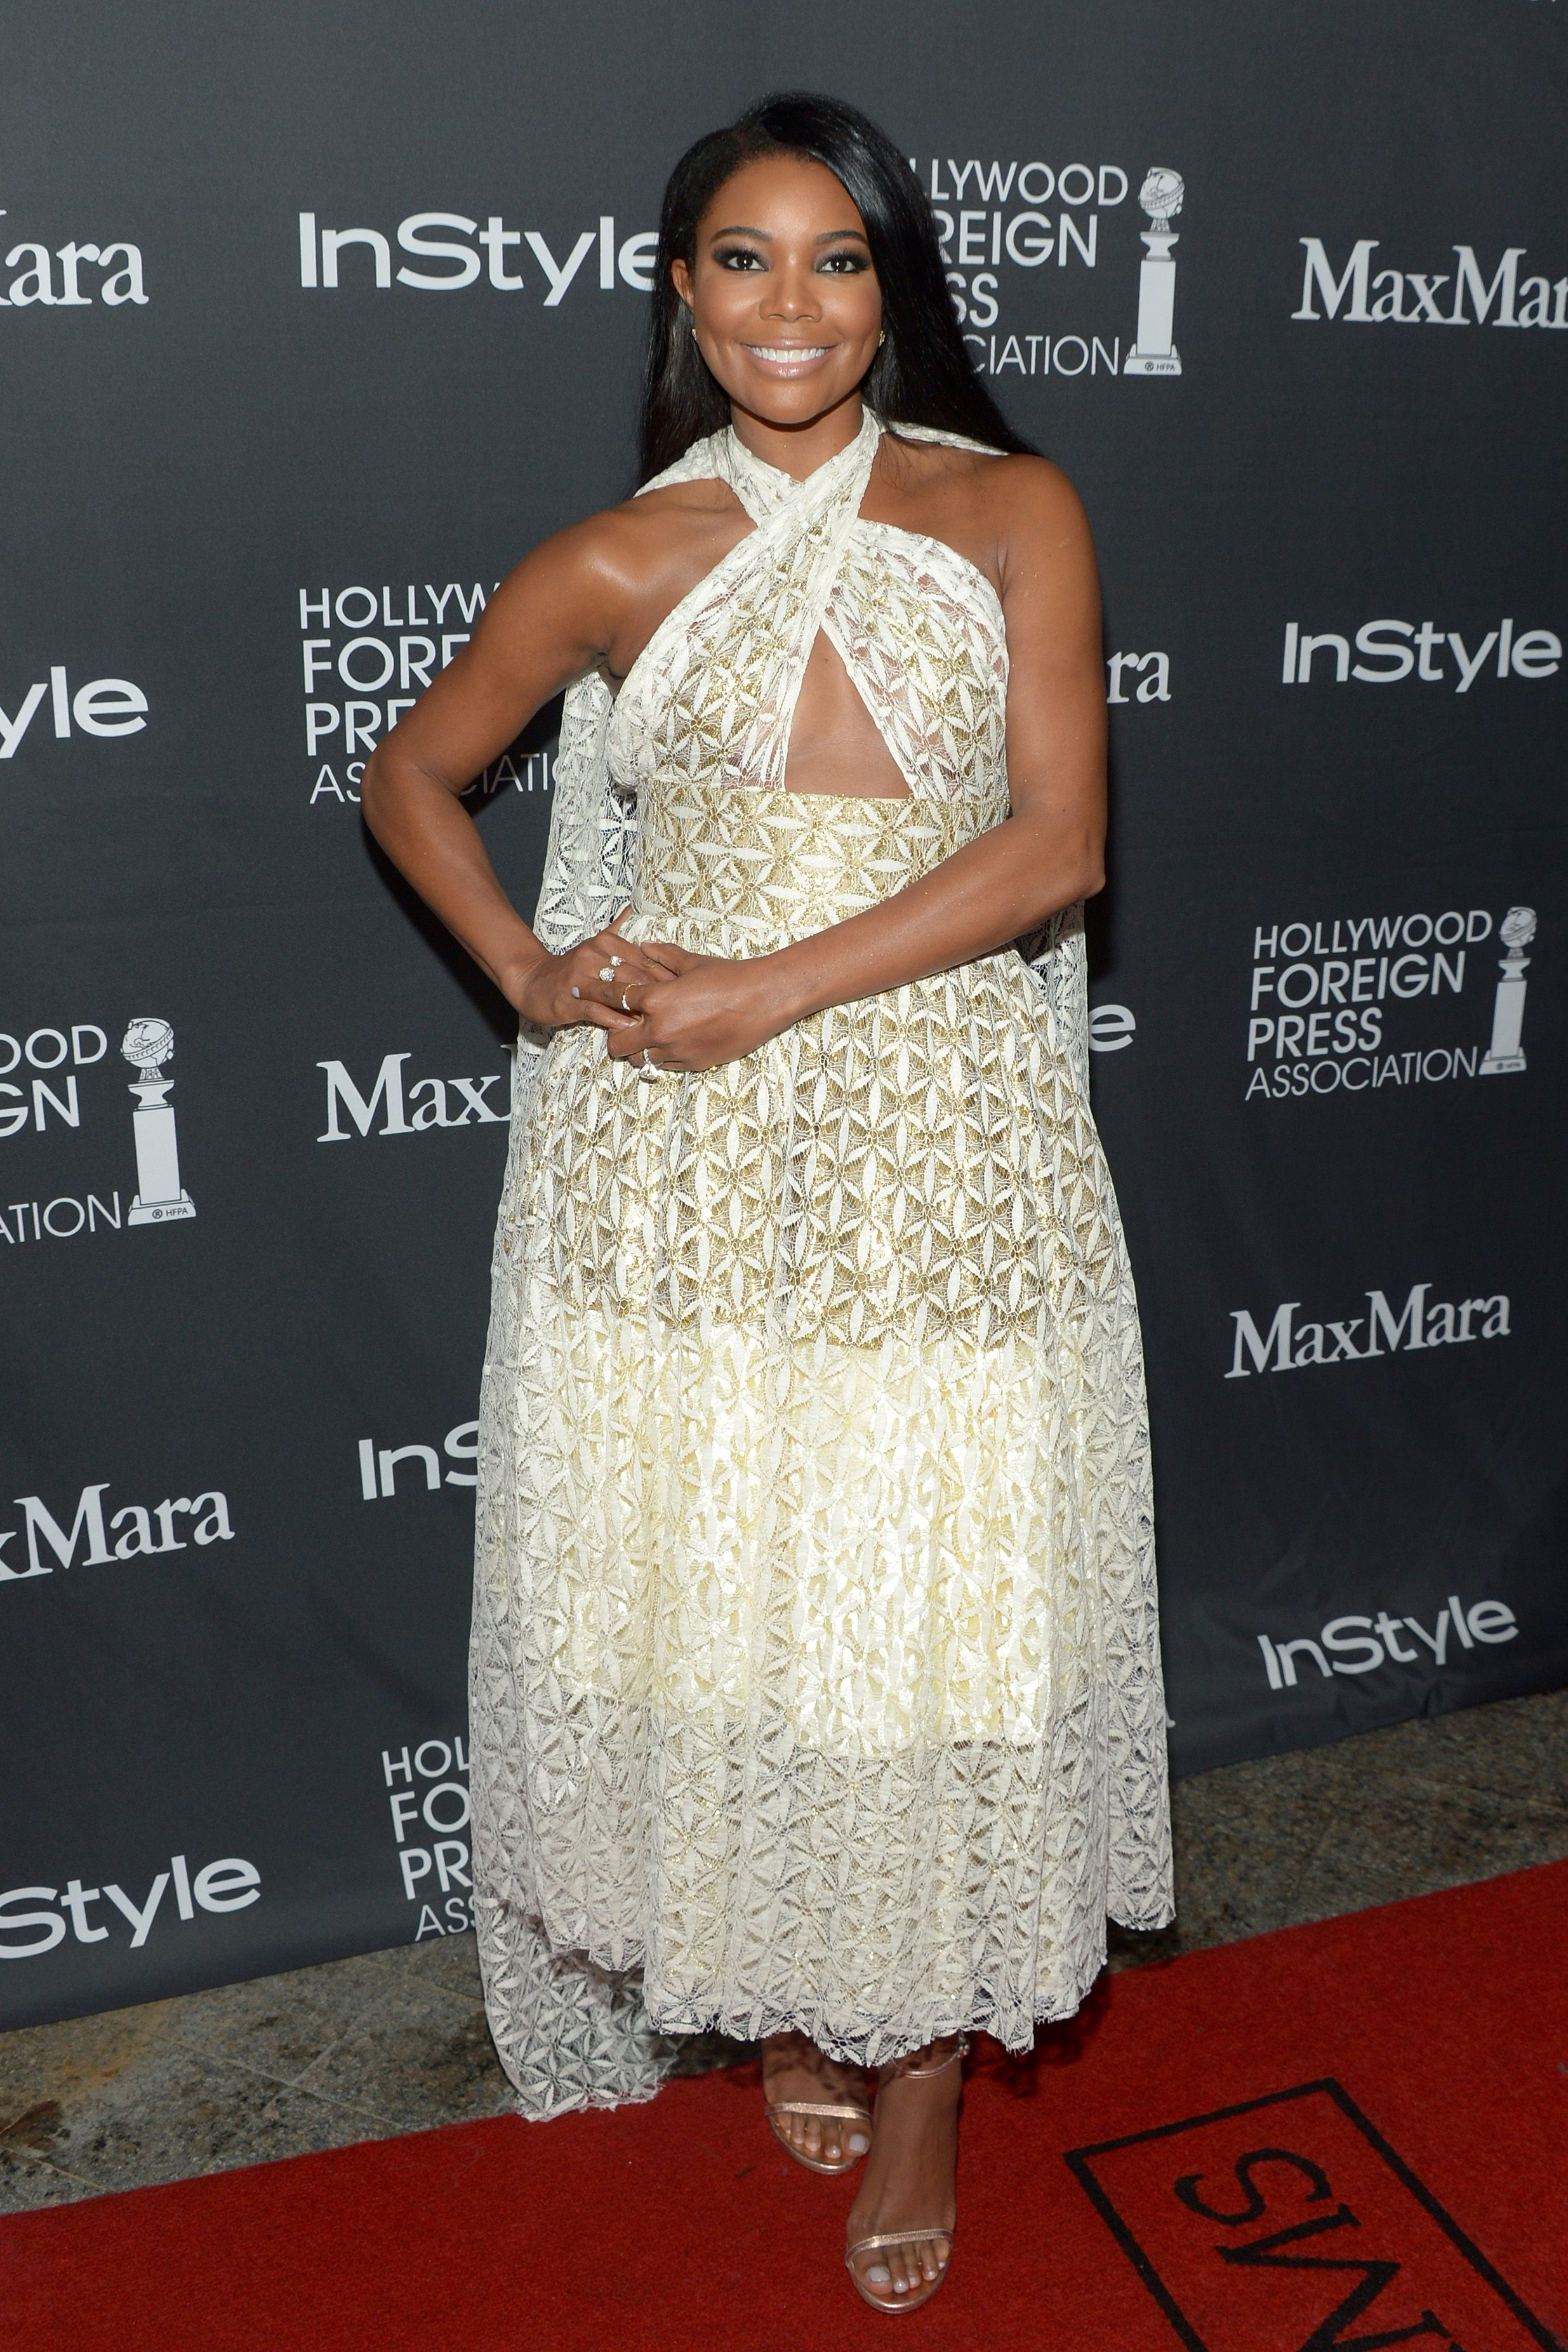 Gabrielle Union during the TIFF/InStyle/HFPA Party during the 2016 Toronto International Film Festival at Windsor Arms Hotel on September 10, 2016 in Toronto, Canada. | Source: Getty Images